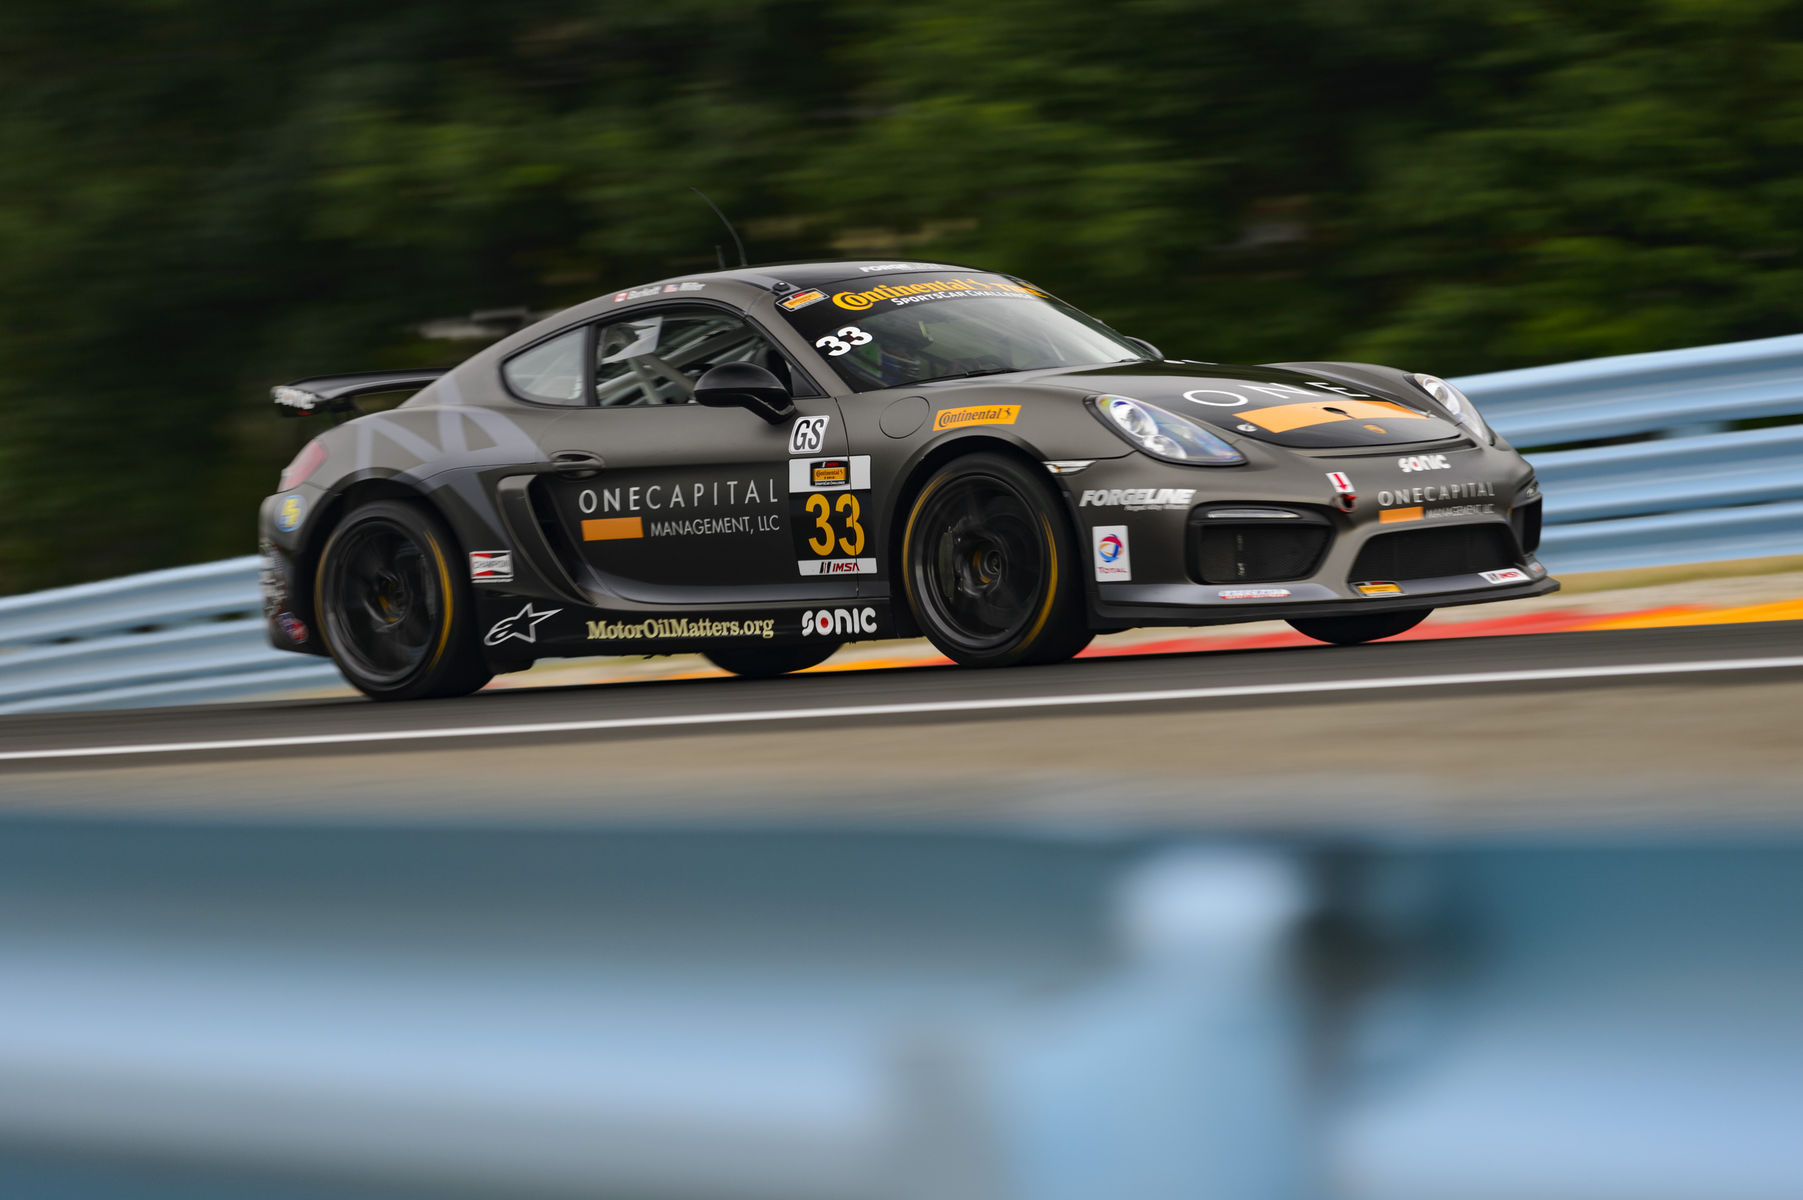 2015 Porsche Cayman | Forgeline-Equipped Porsche Caymans Sweep IMSA CTSC GS at Watkins Glen